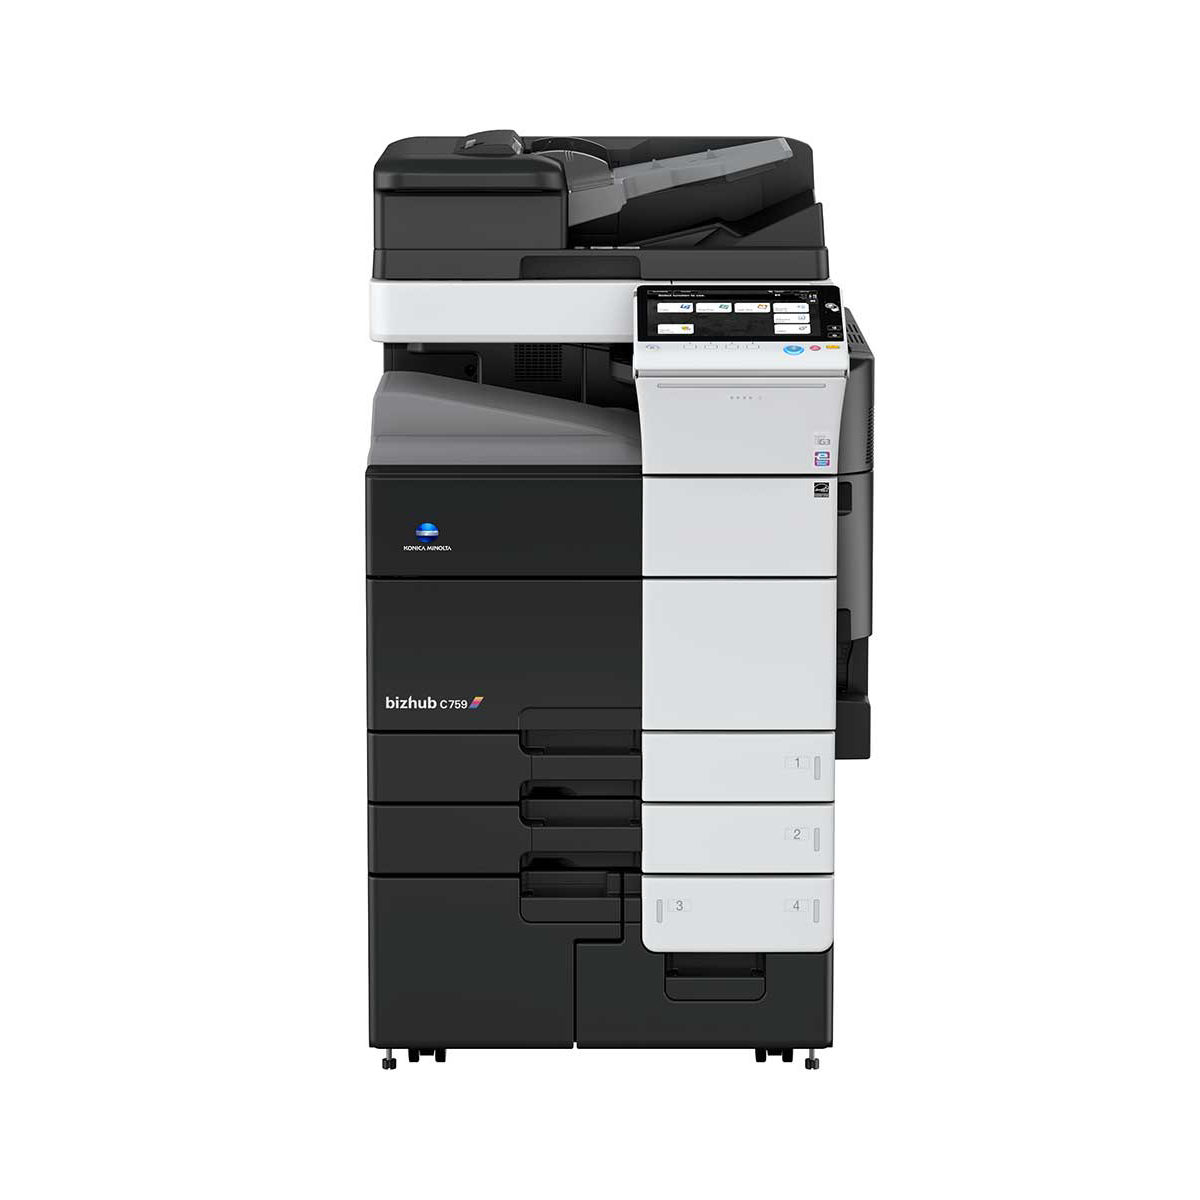 konica minolta bizhub c759 multifunction color copier 19